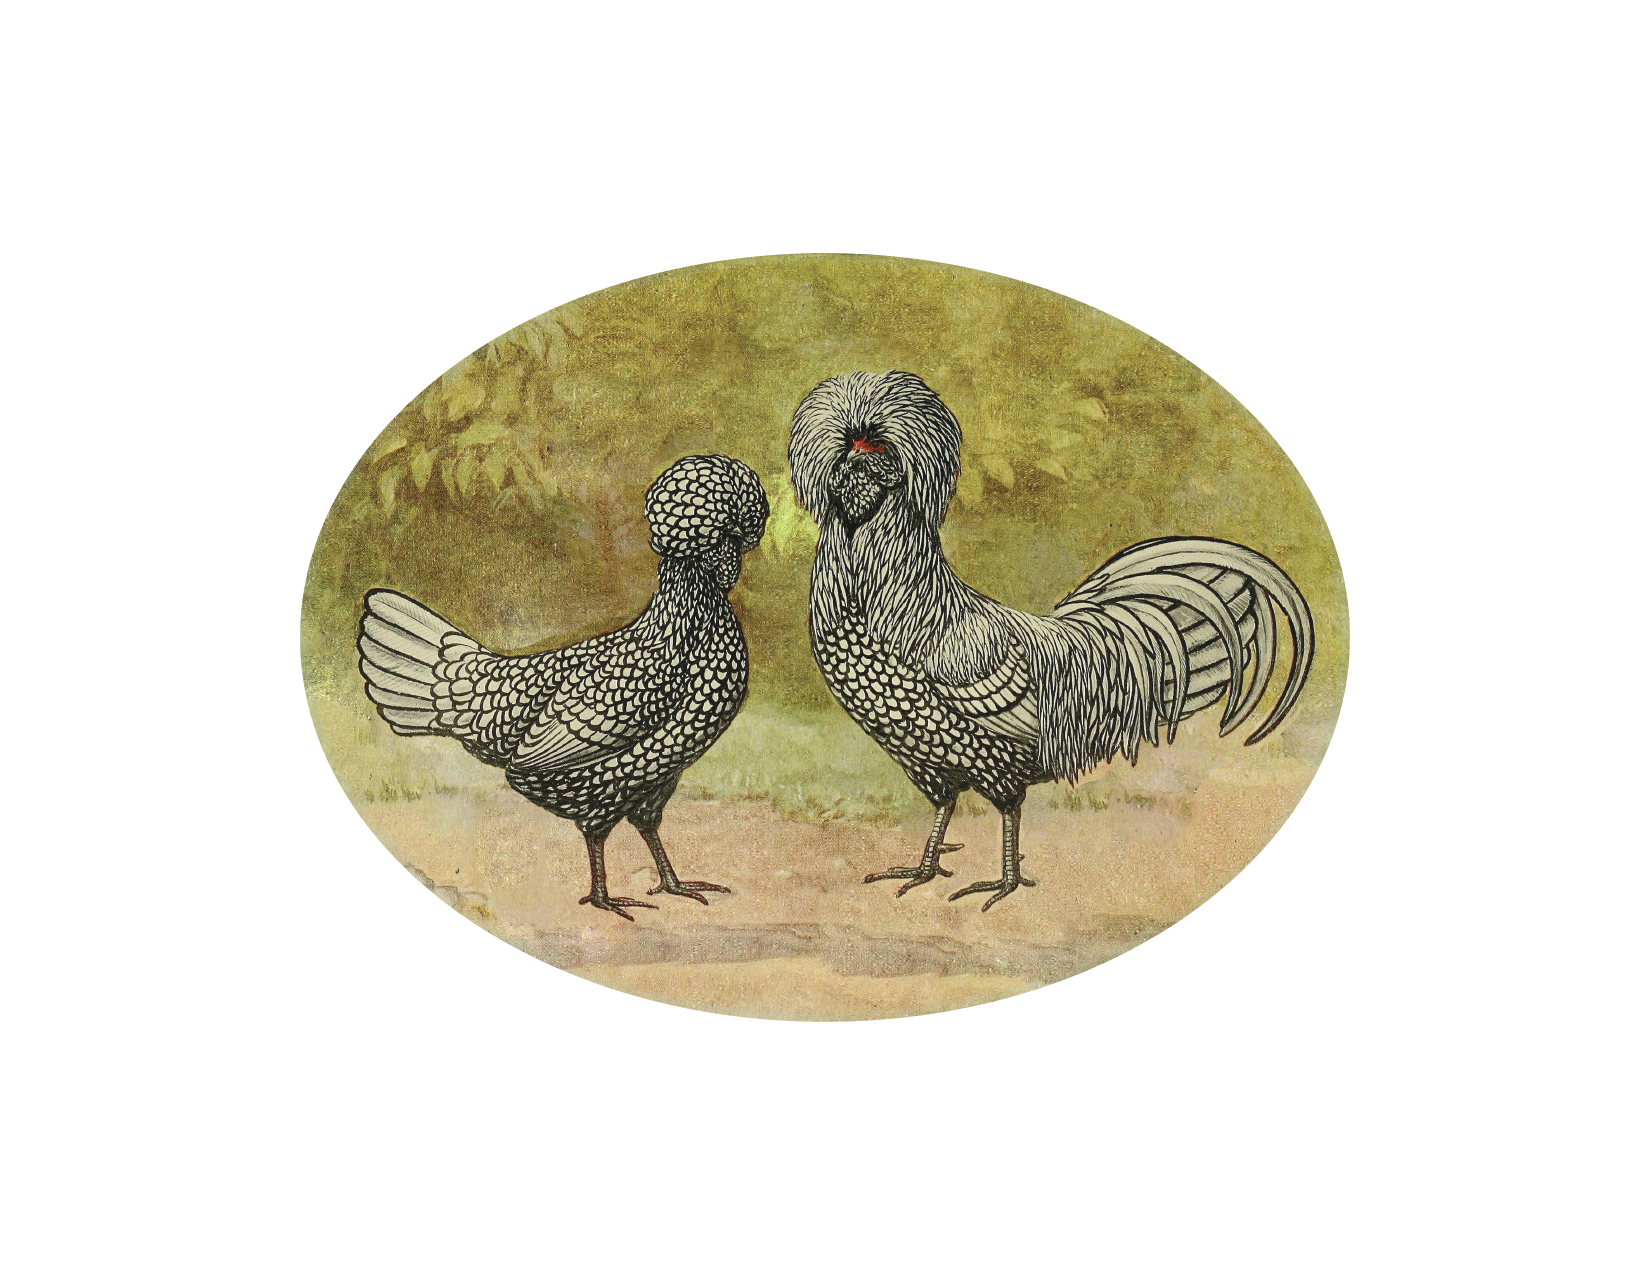 "Funny Chickens - 5x7"" oval"